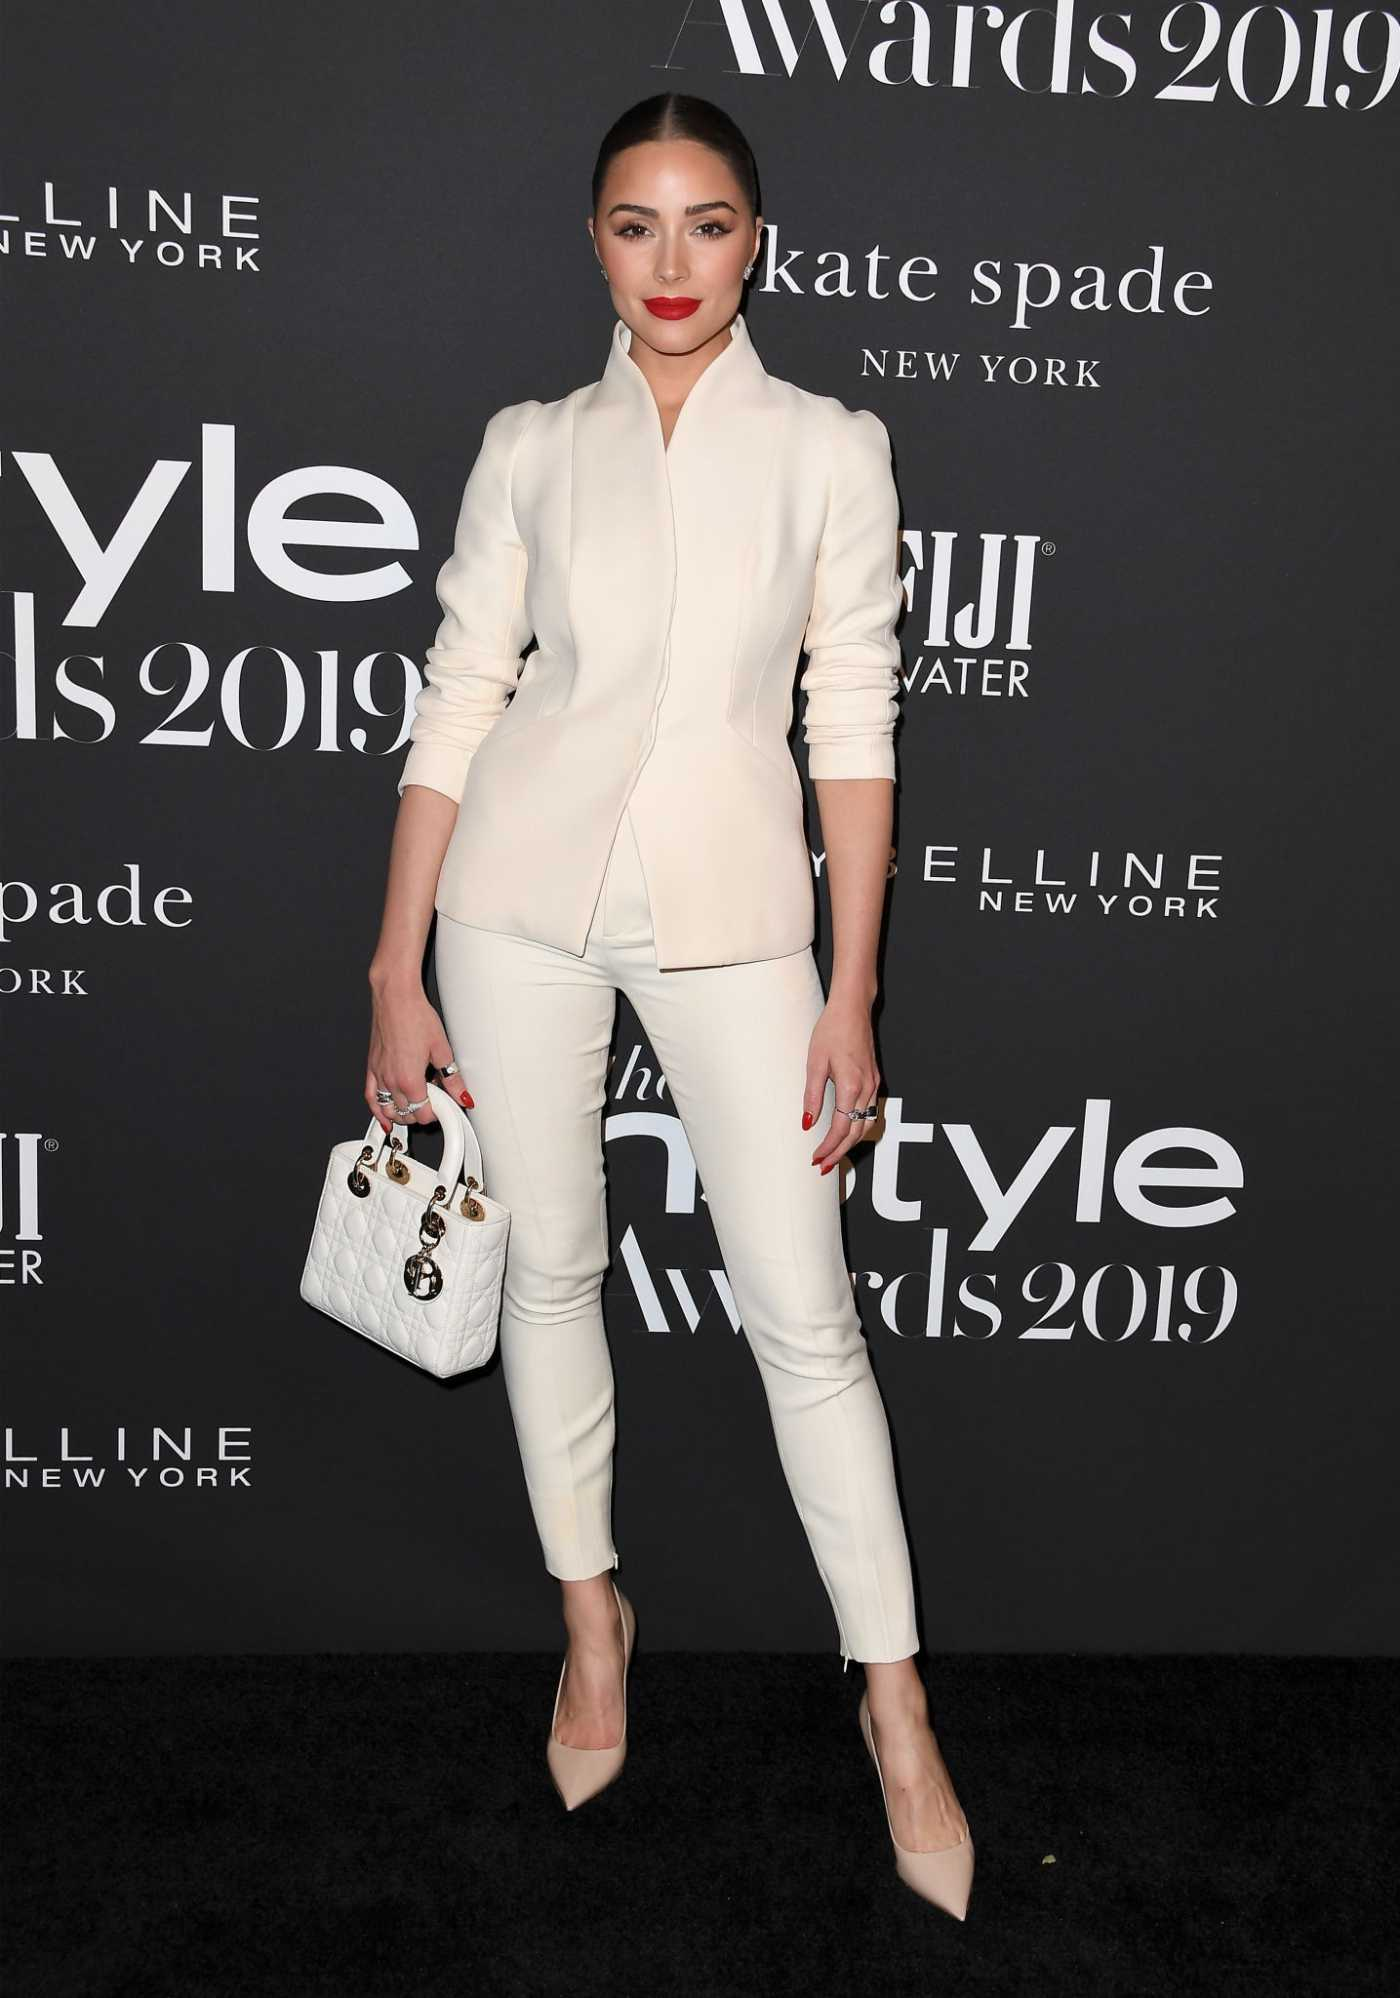 Olivia Culpo Attends the 5th Annual InStyle Awards in Los Angeles 10/21/2019